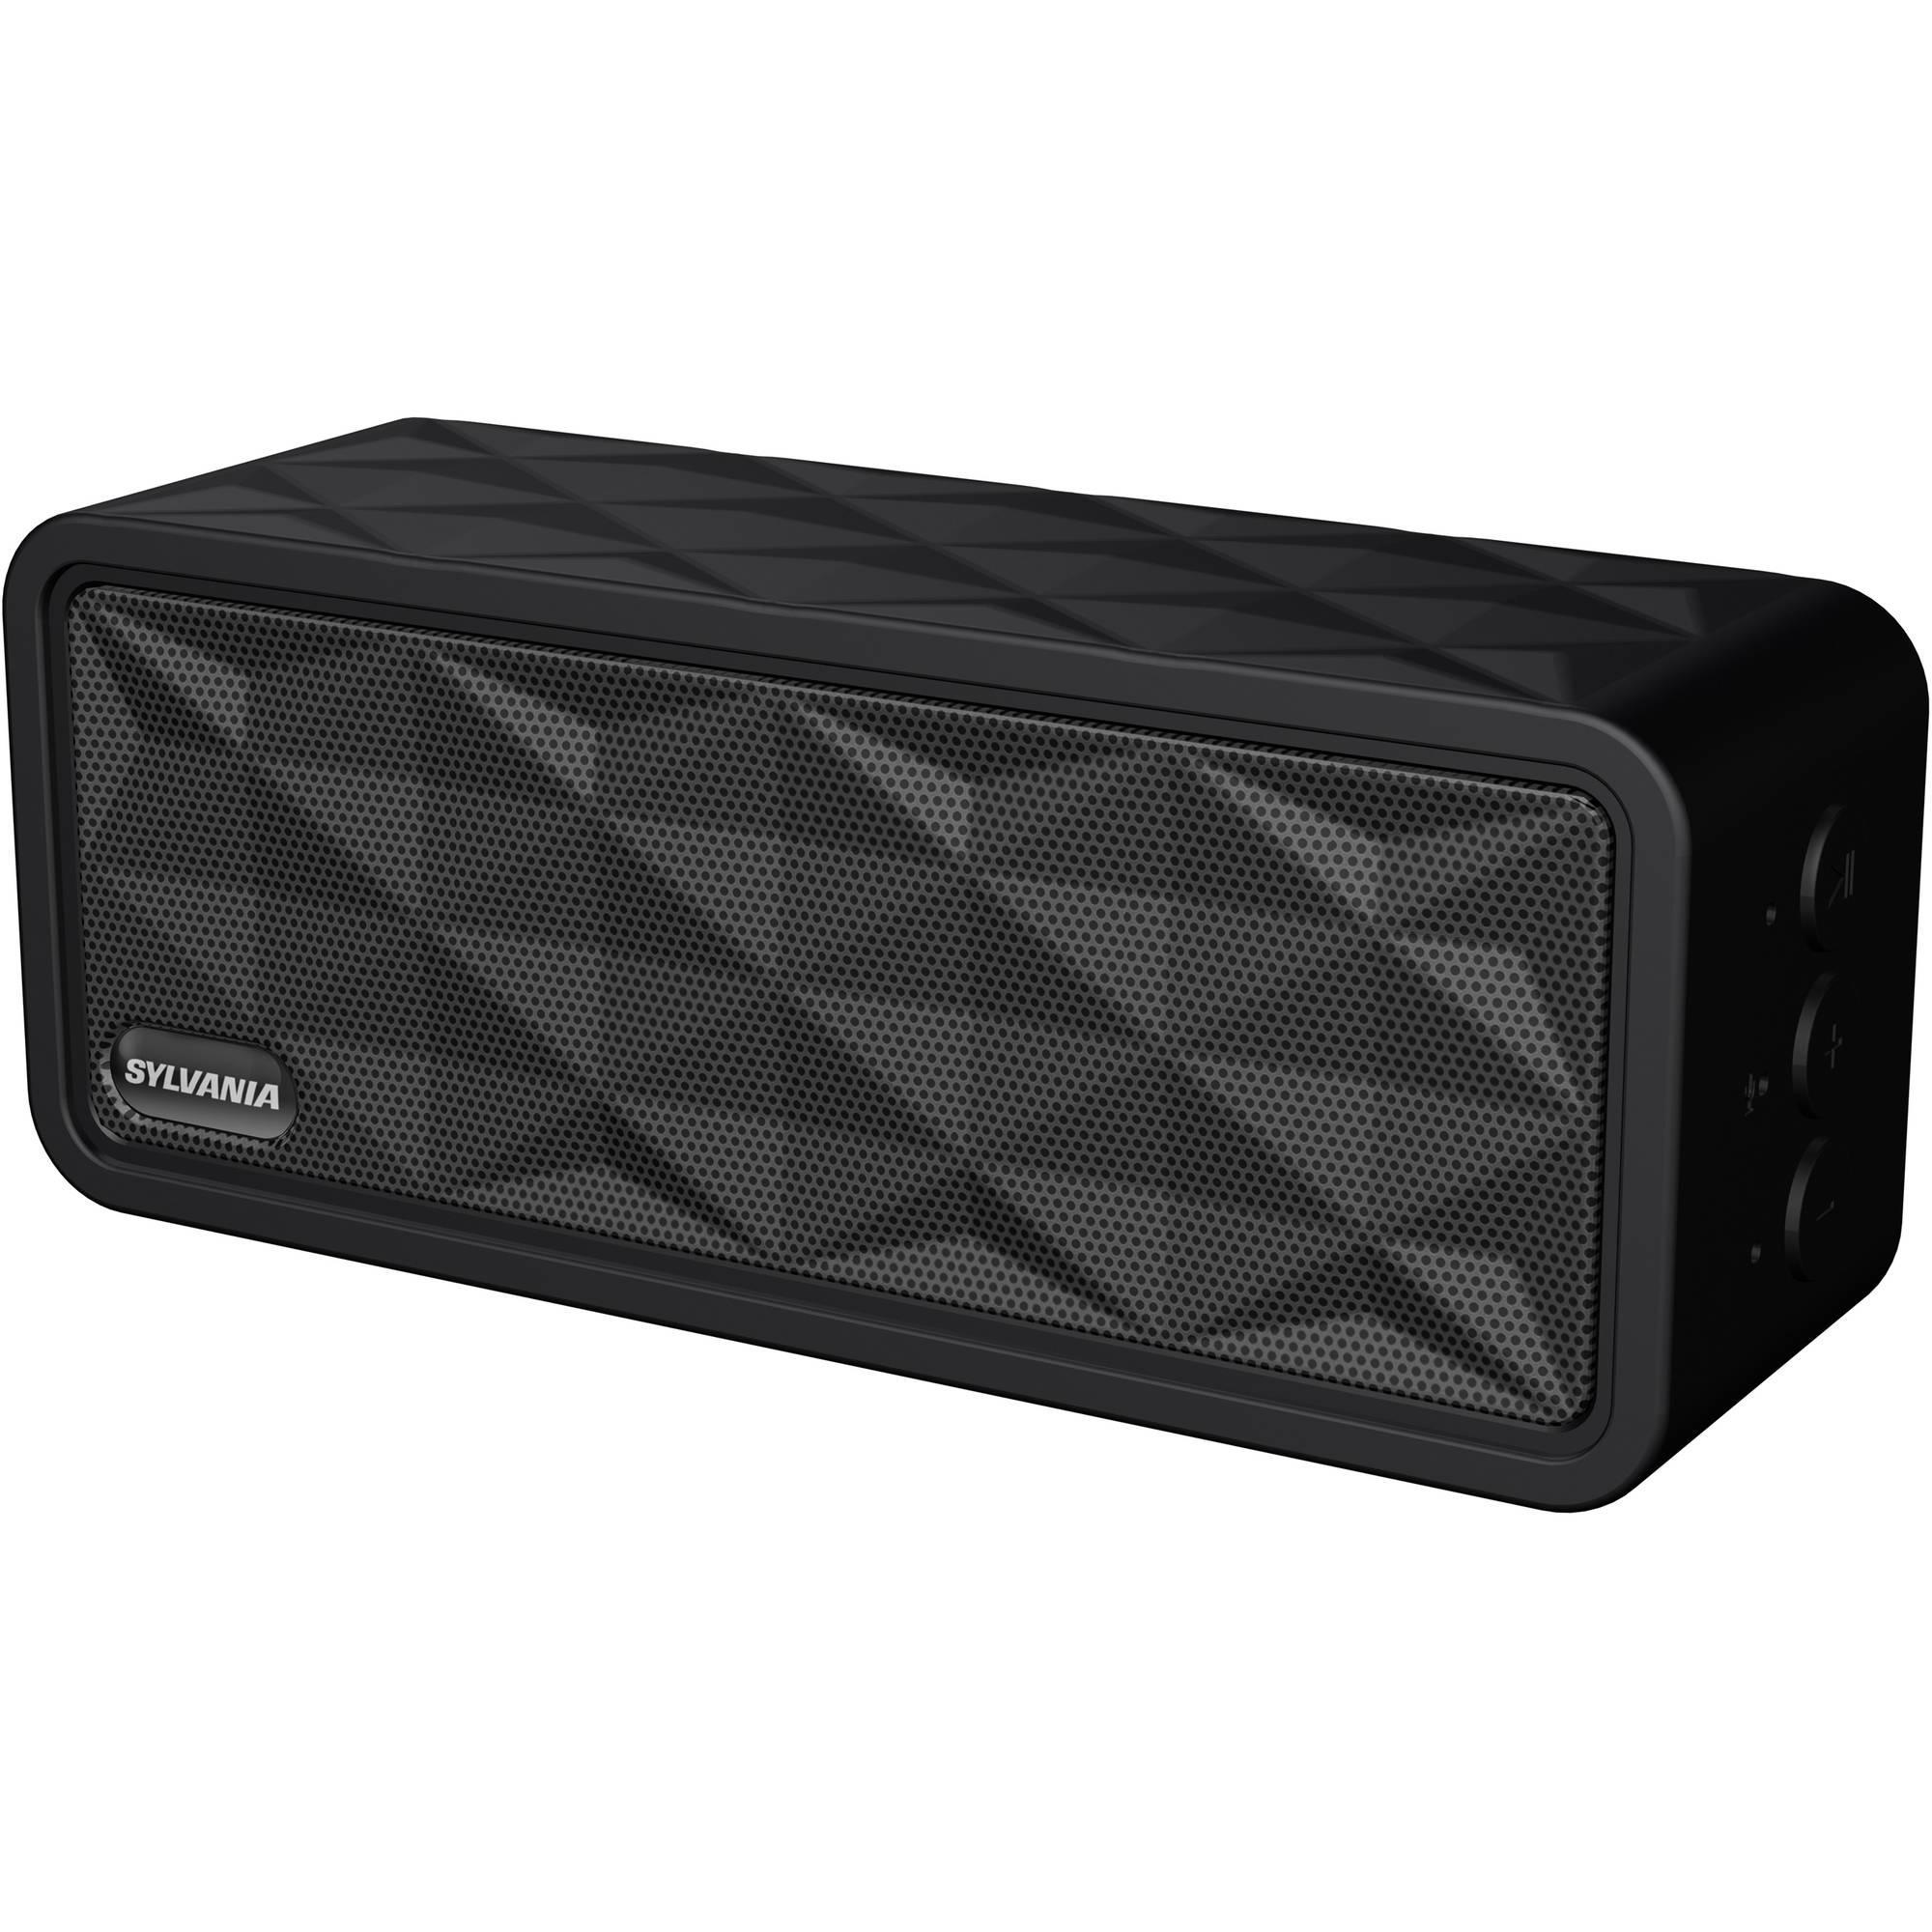 Sylvania Premium Portable Bluetooth Rugged Garage Speaker